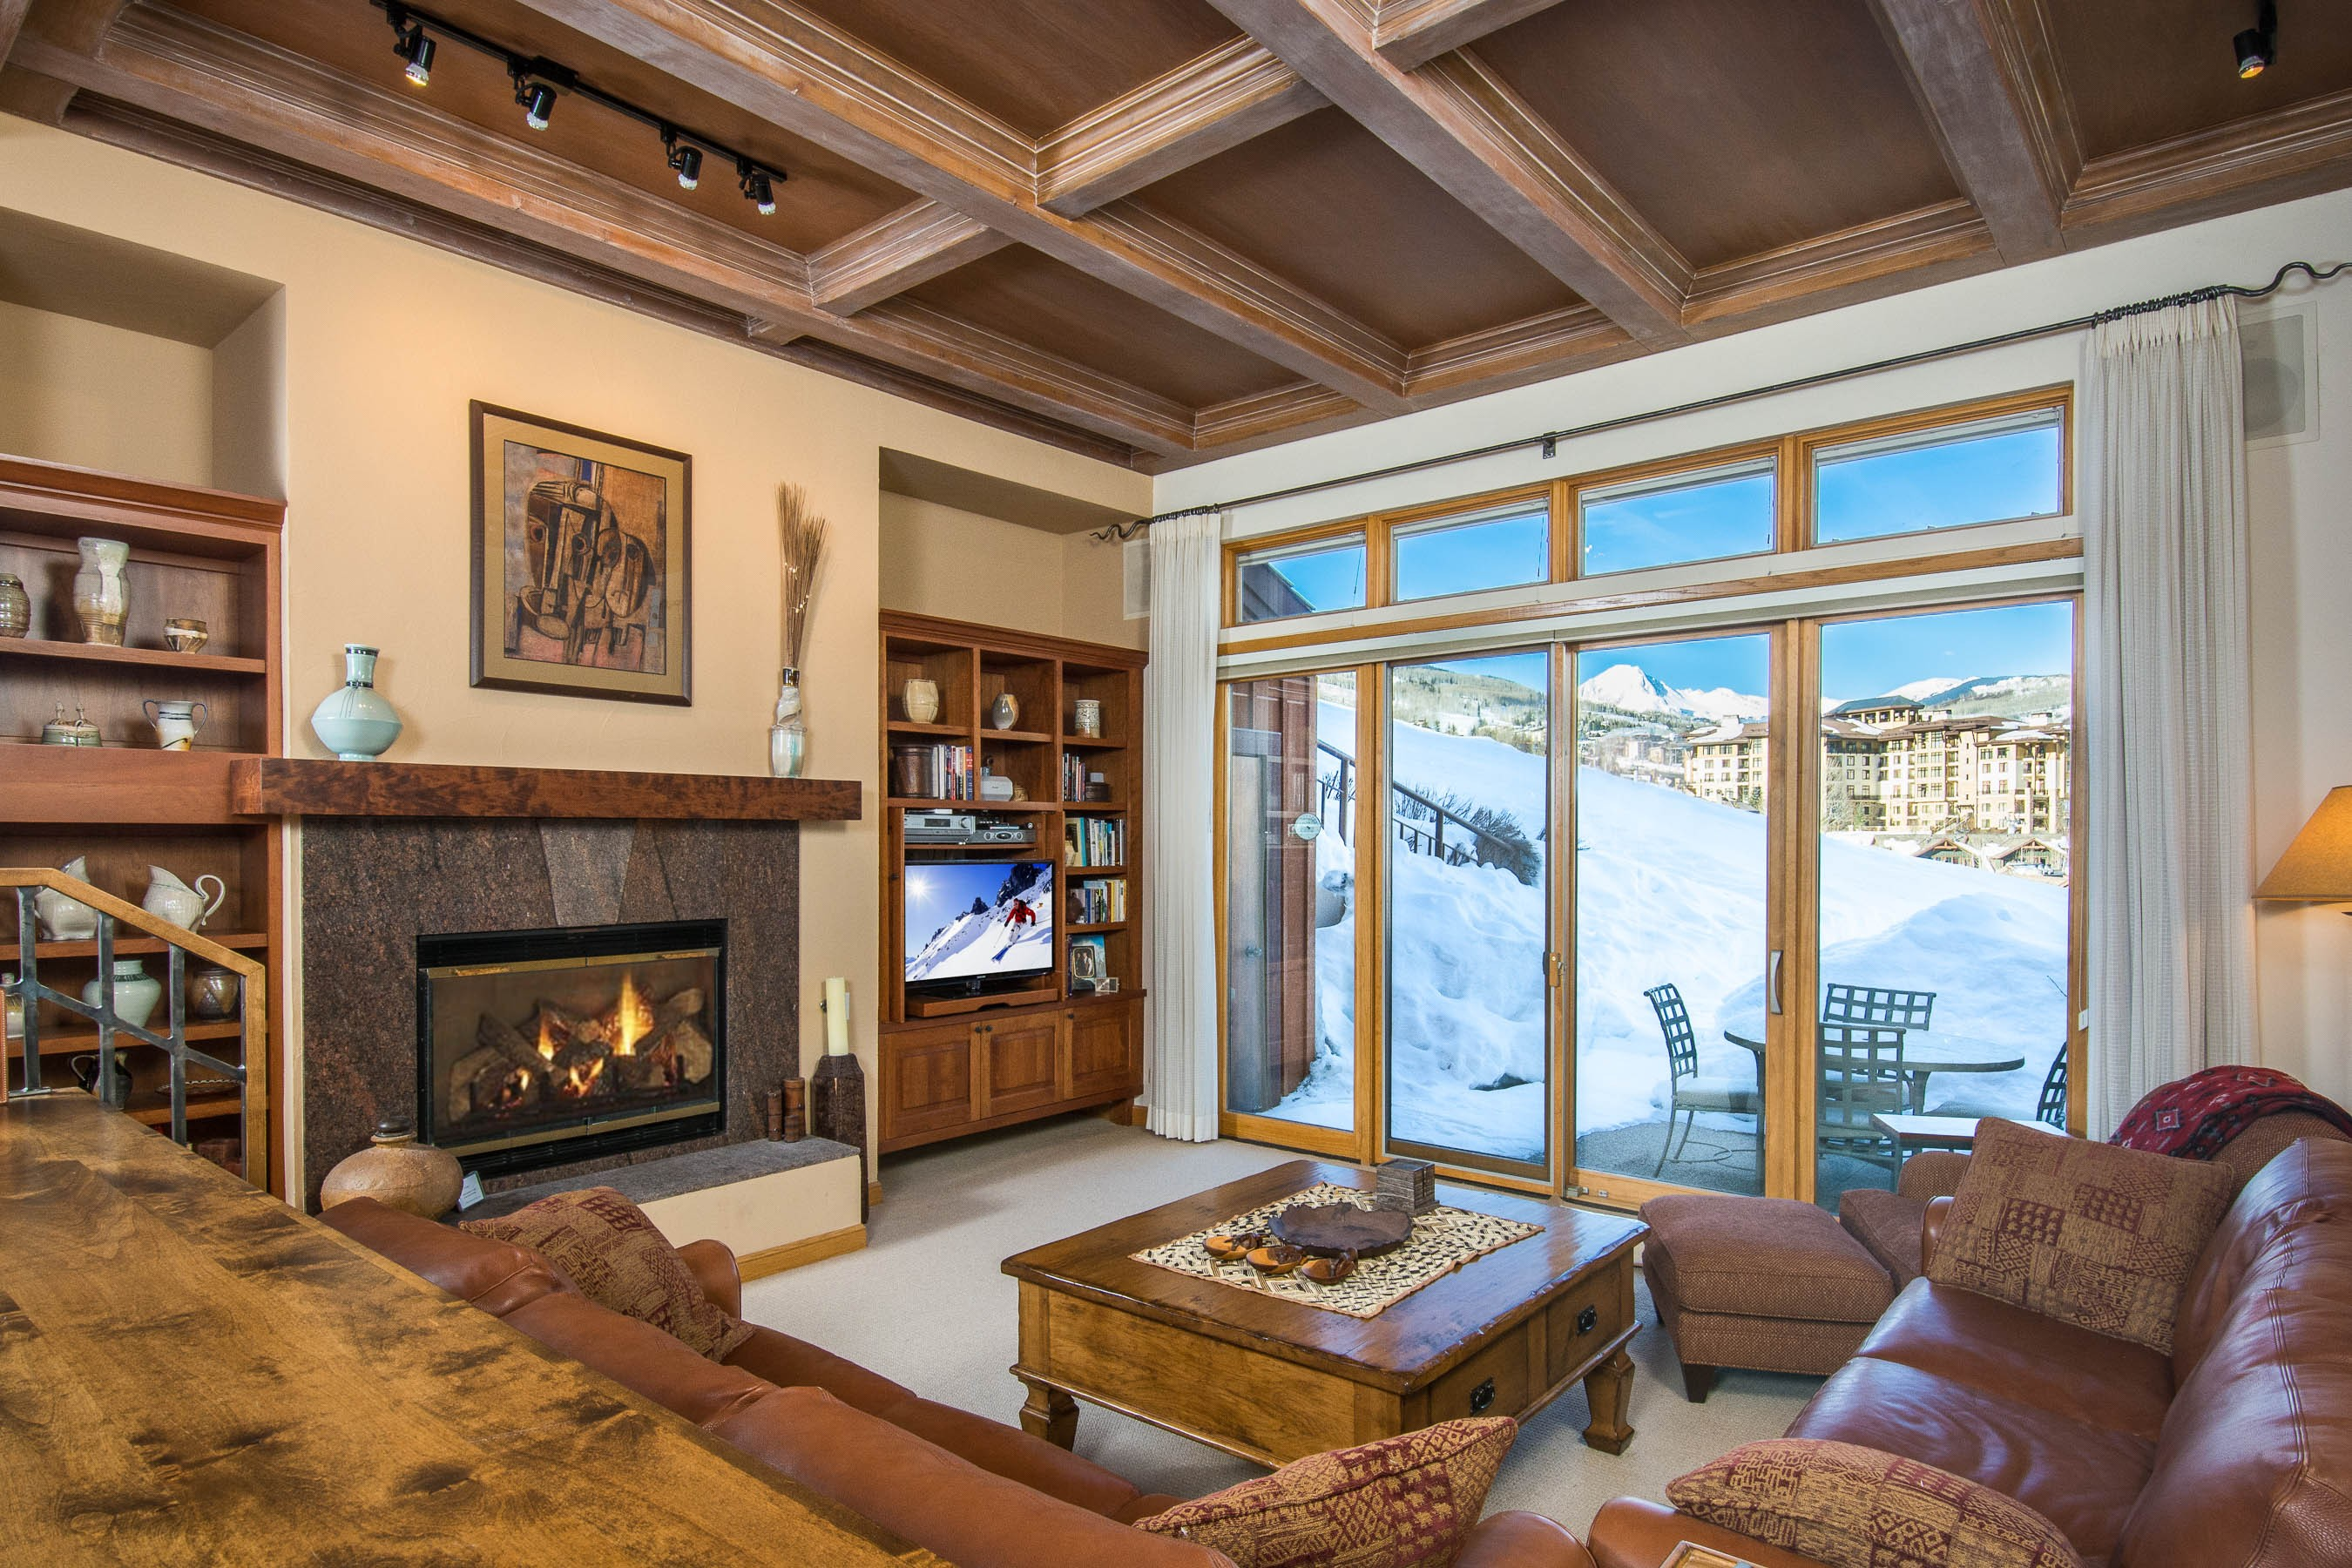 Condomínio para Venda às Spacious 3 Bedroom Ski Retreat 229 Faraway Road Unit 5 Snowmass Village, Colorado, 81615 Estados Unidos